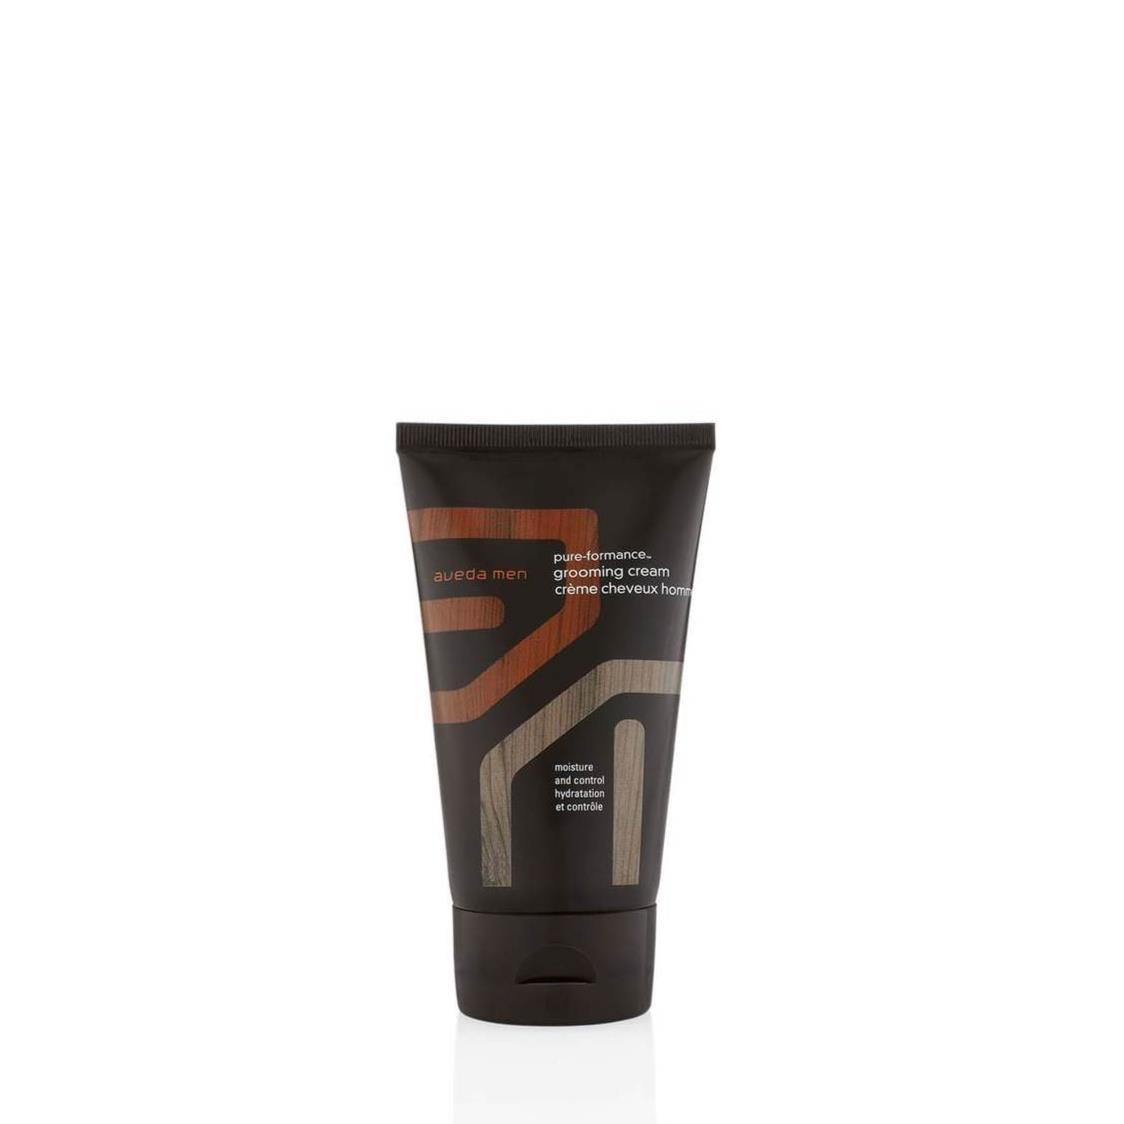 Men Pure-formance Grooming Cream 125ml